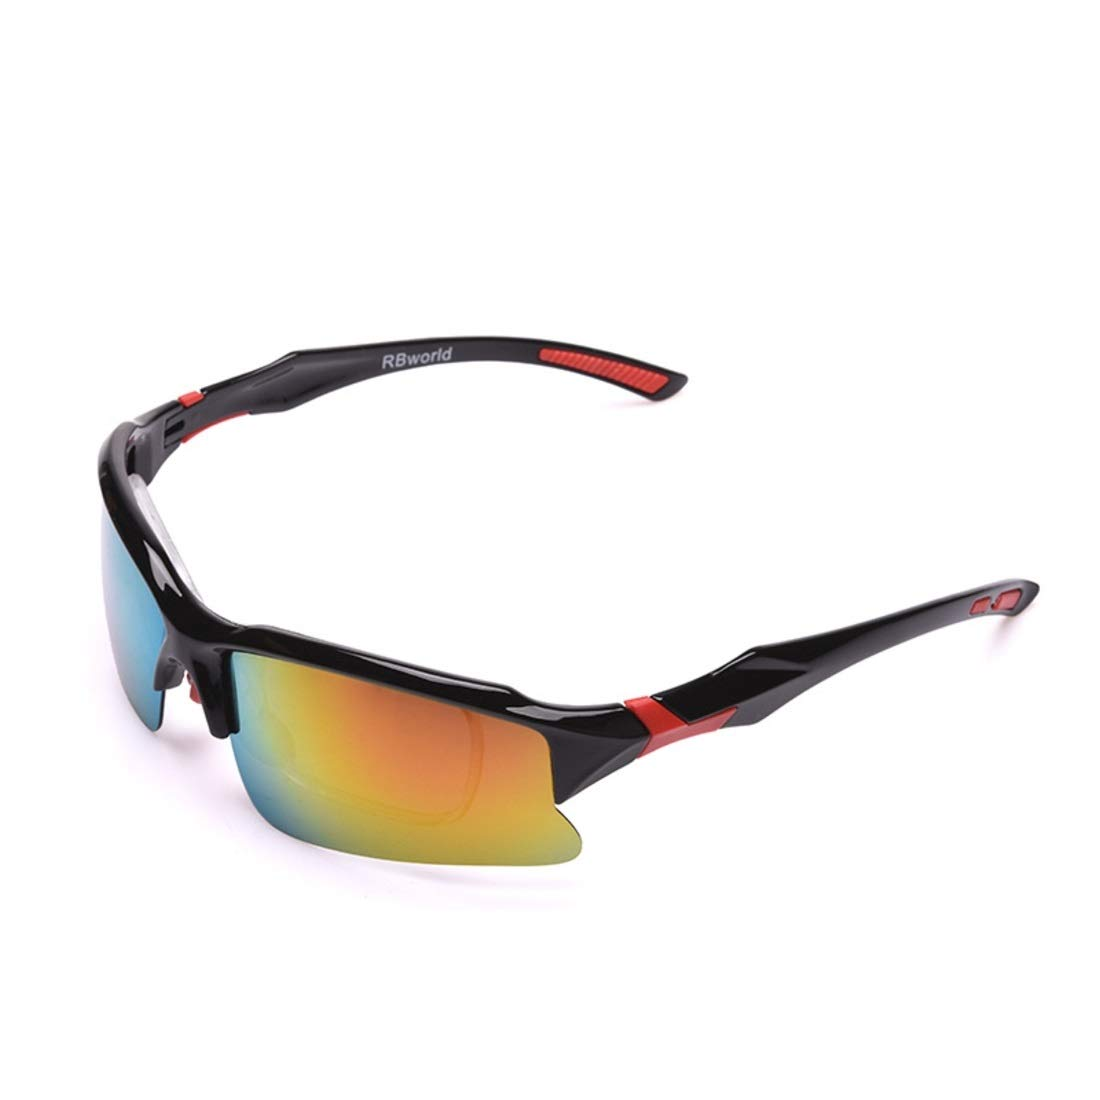 BAOYIT Riding Glasses Polarized Night Vision Fishing Mountaineering Running Sports Glasses Men and Women by BAOYIT